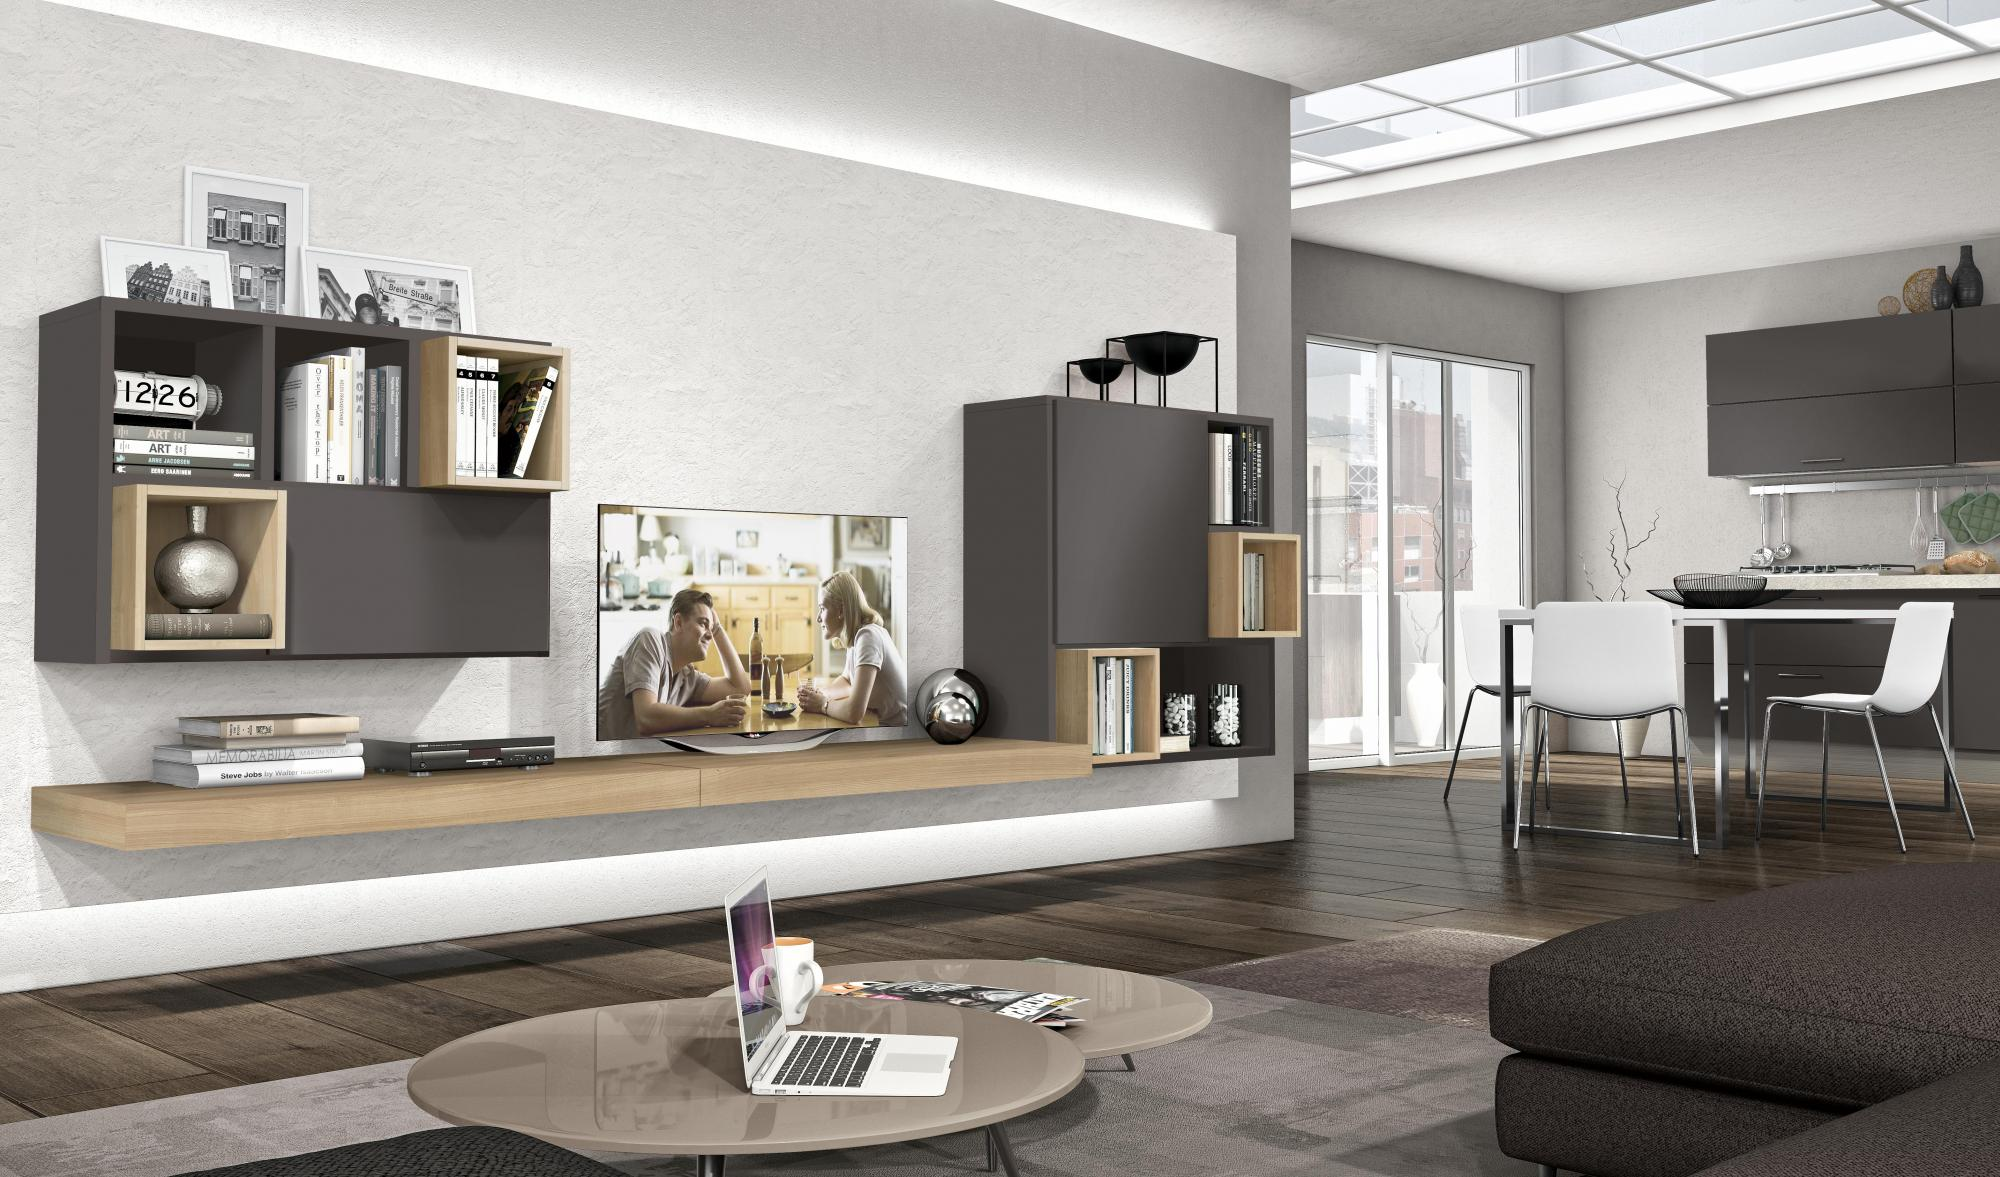 Golf L128 - Living room - Living room ideas - Colombini Casa - Grey - Wood - Suspended